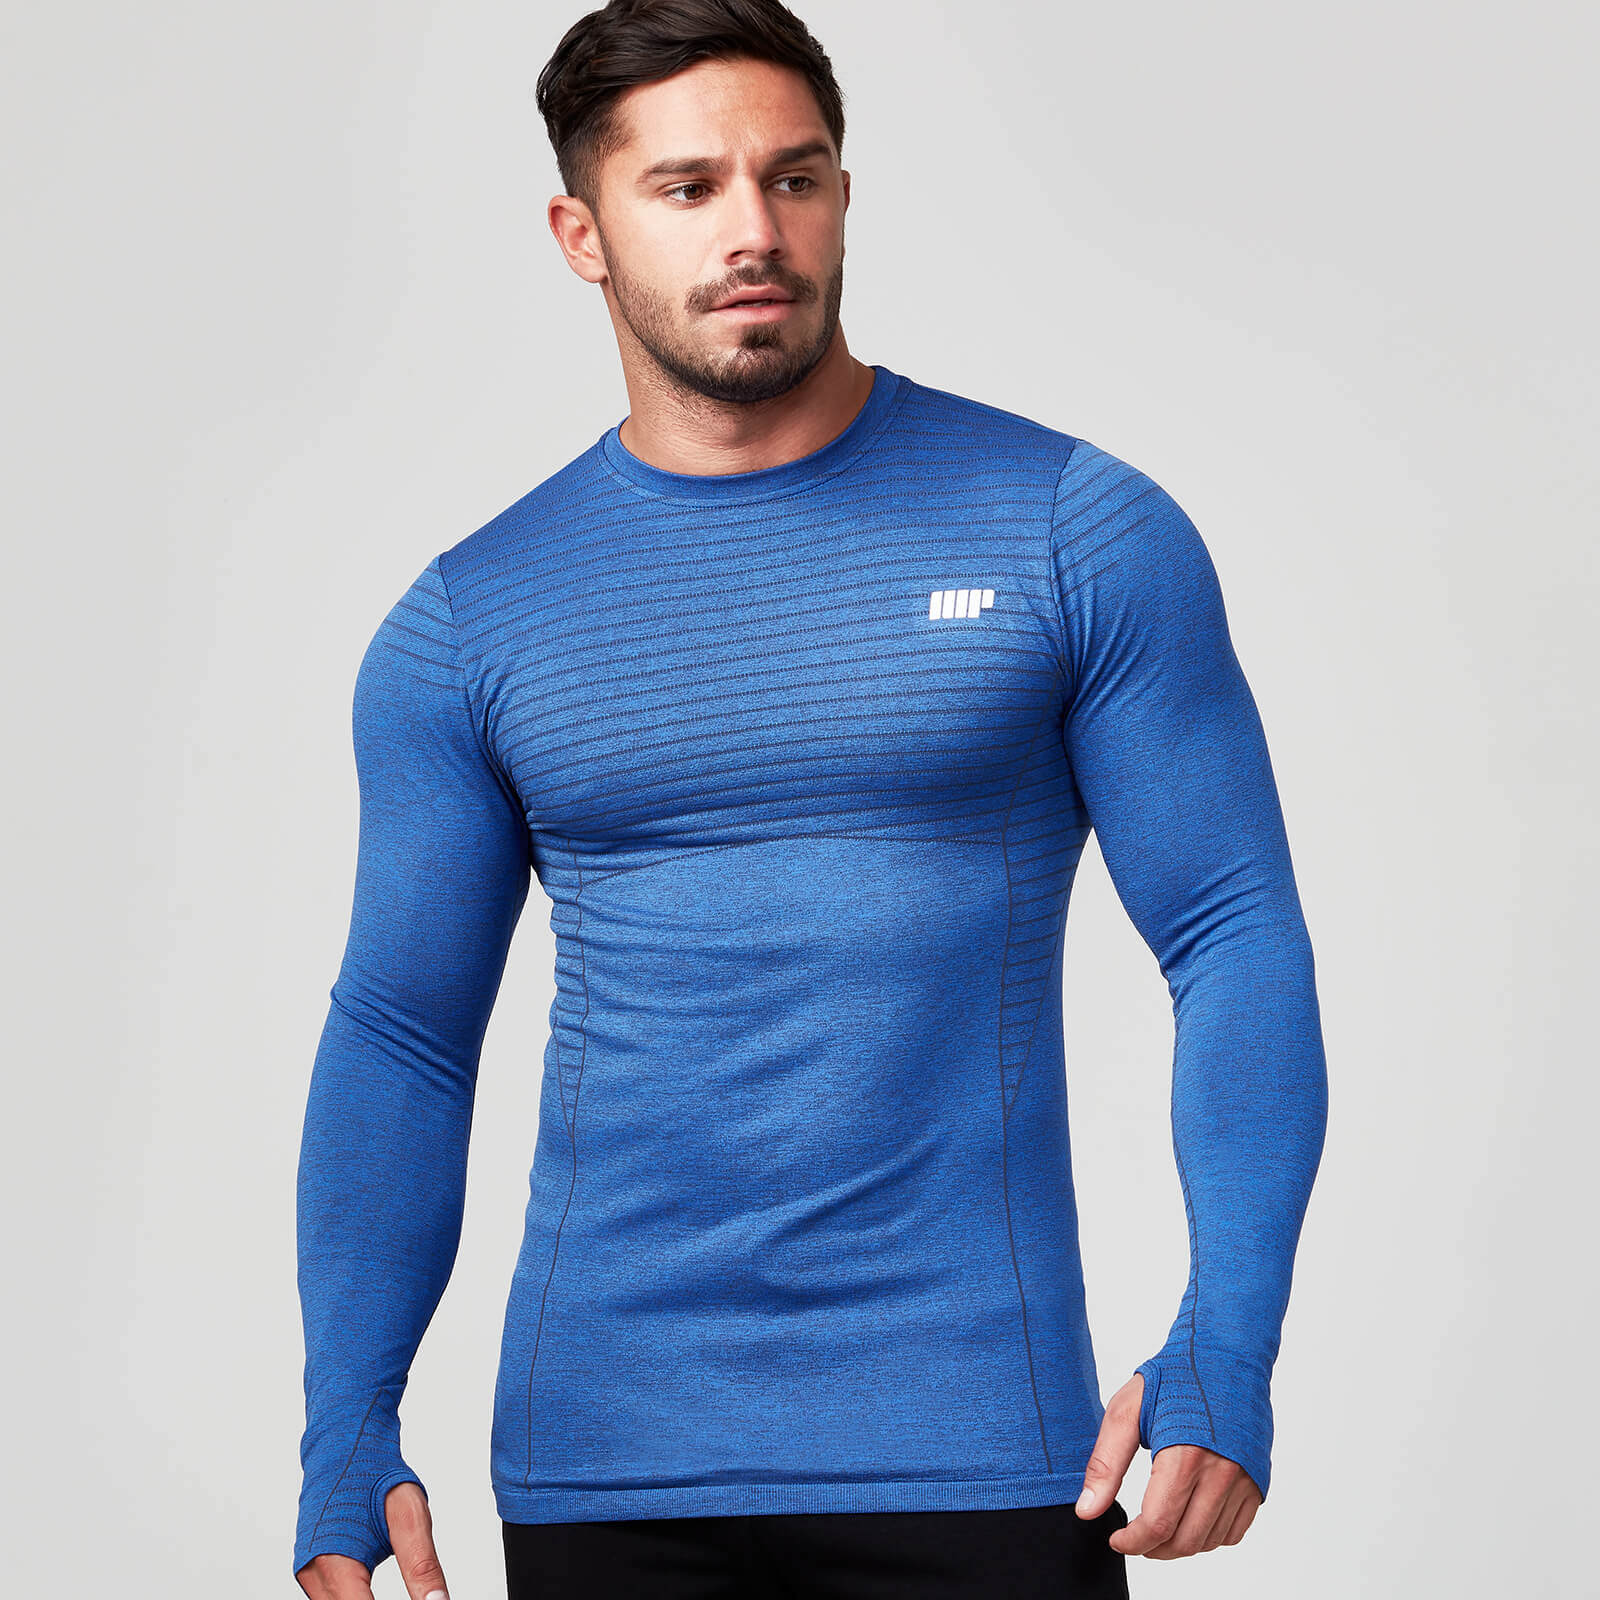 Myprotein Carve Seamless Long Sleeve T-Shirt